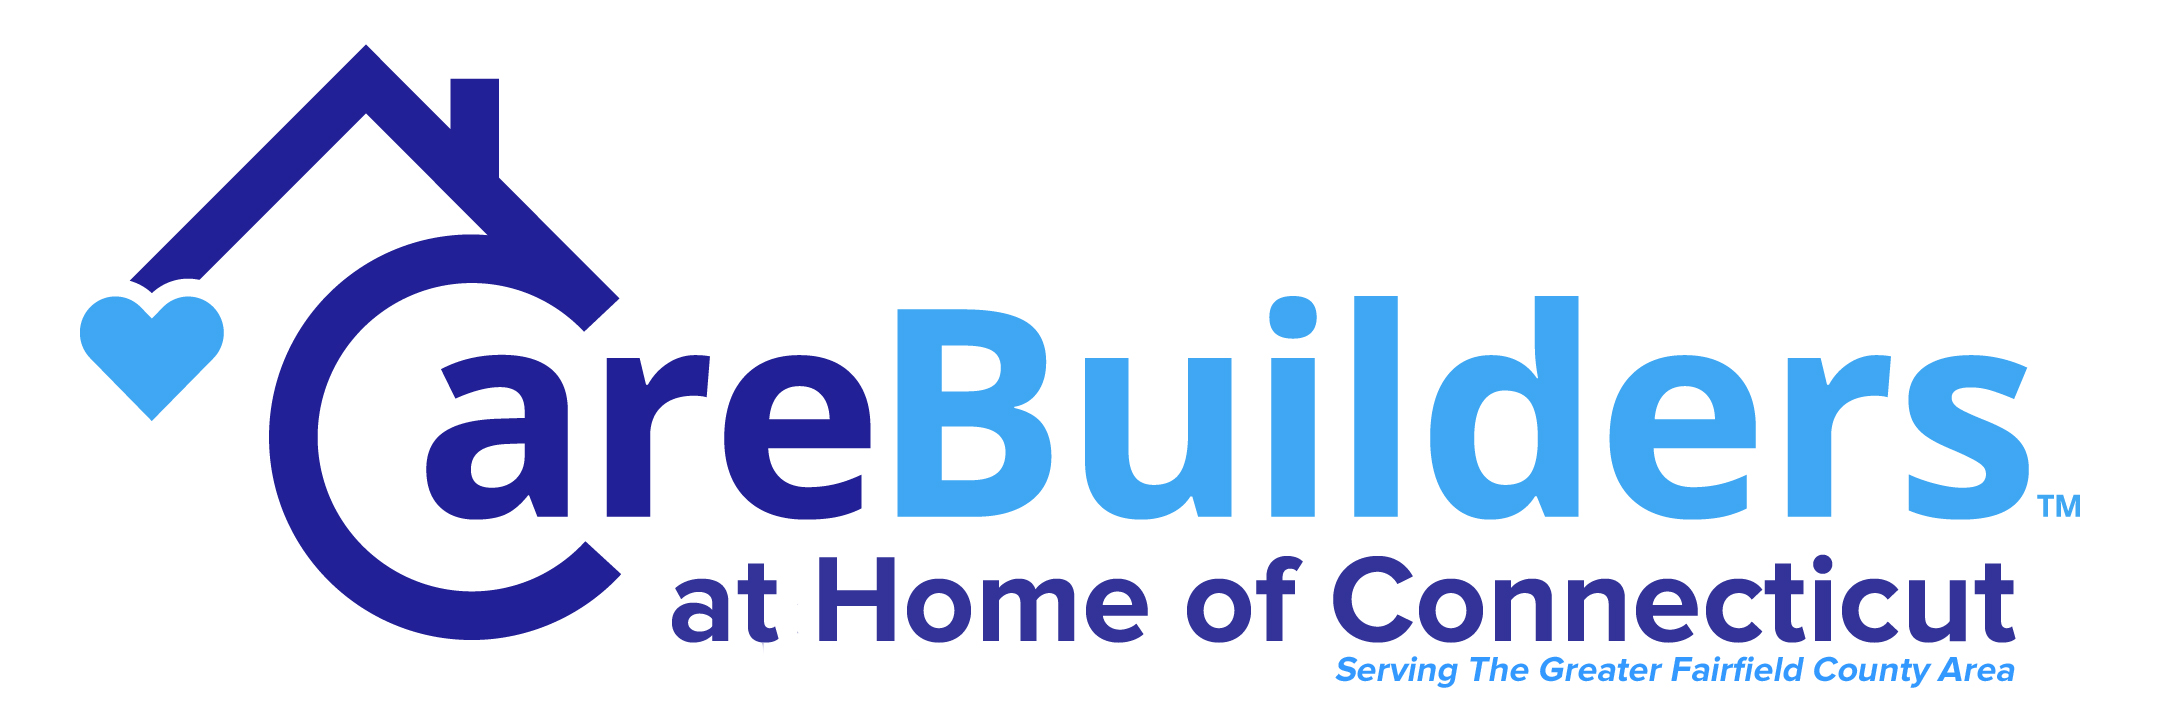 CareBuilders at Home of Connecticut